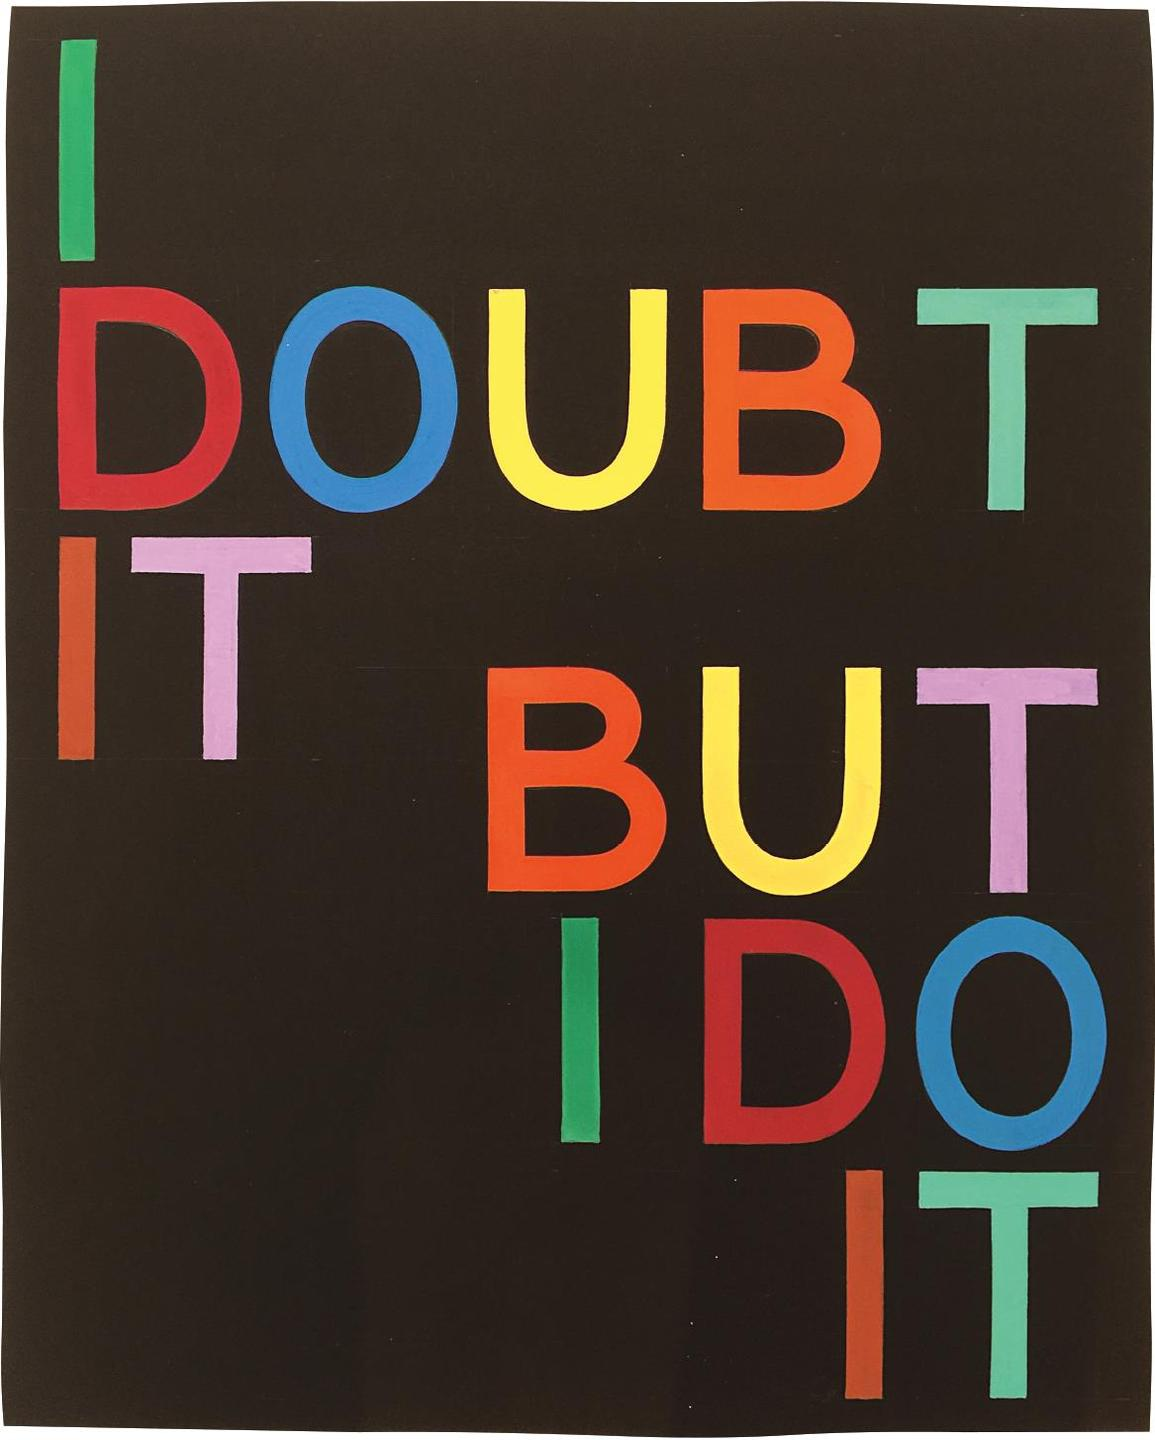 Tauba Auerbach-I Doubt It/But I Do It I-2008